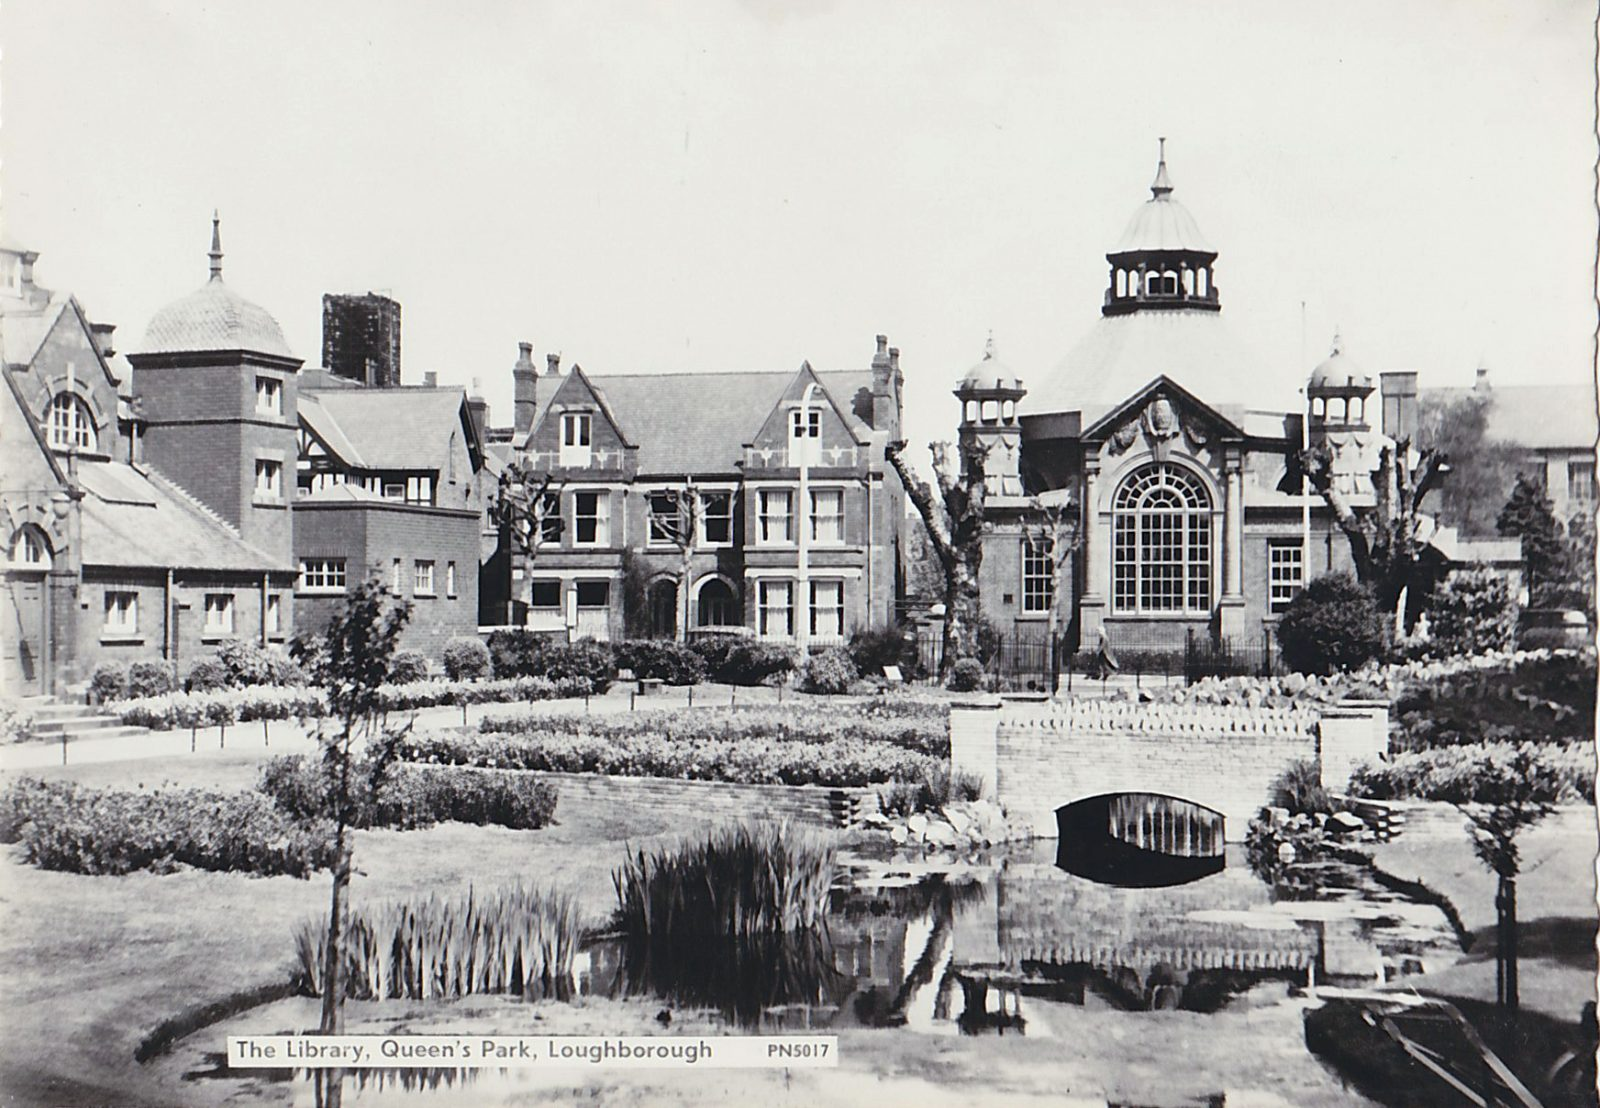 Queens Park, Loughborough. 1901-1920: The Library and bath house. (File:1447)